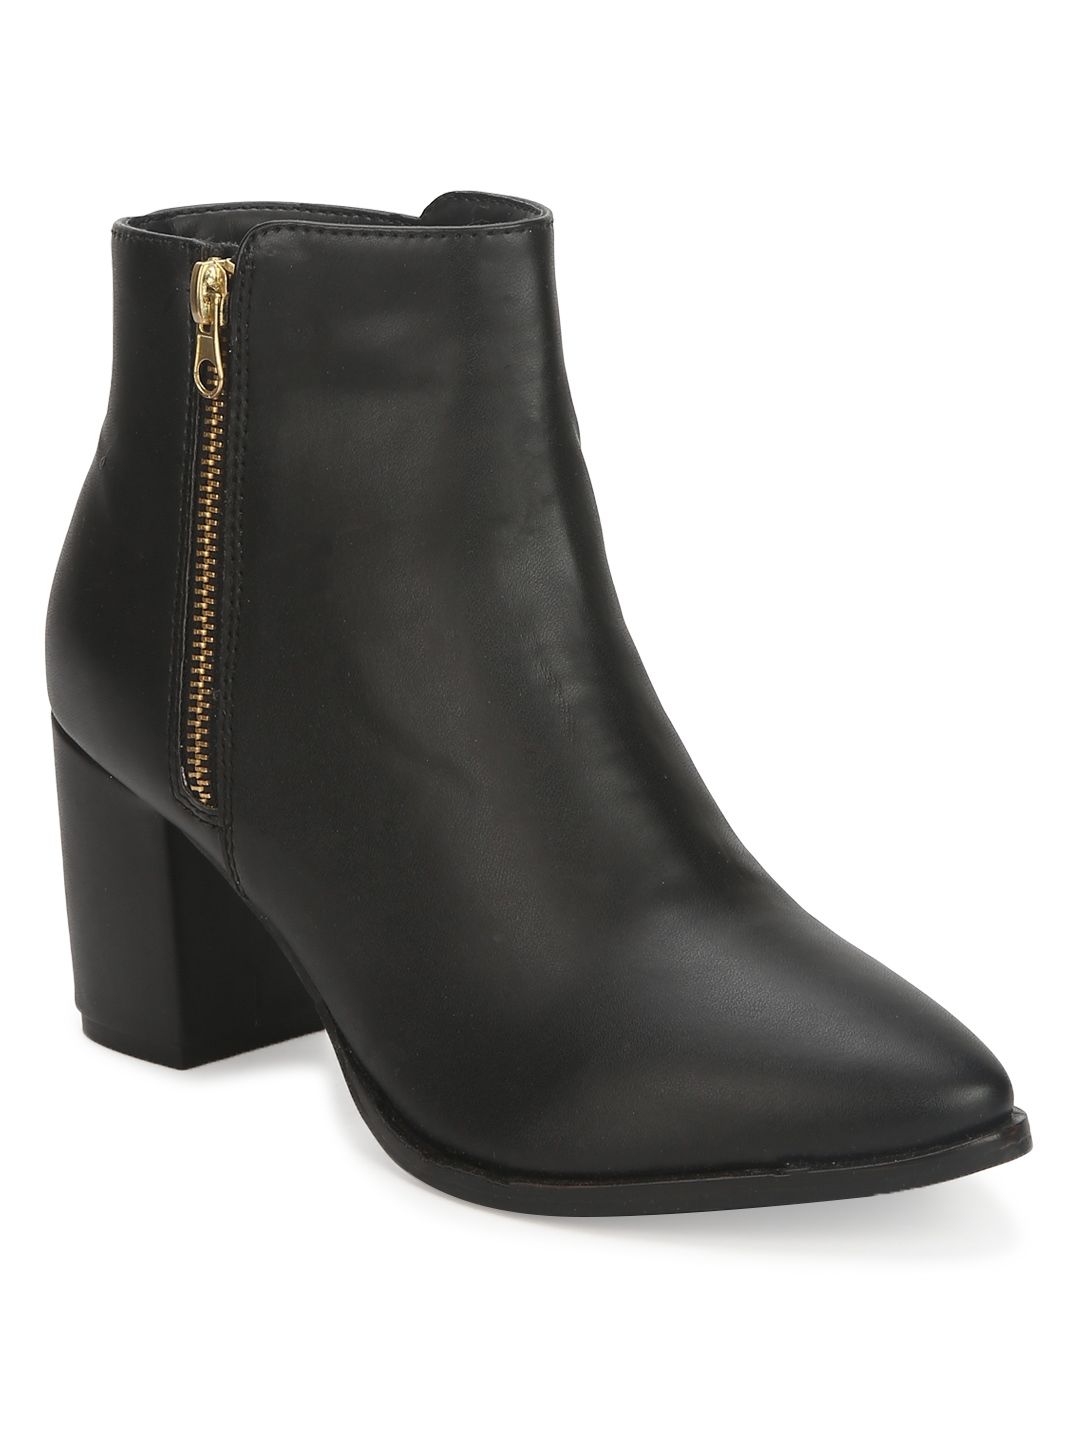 Truffle Collection | Black PU Side Zipper Ankle Boots